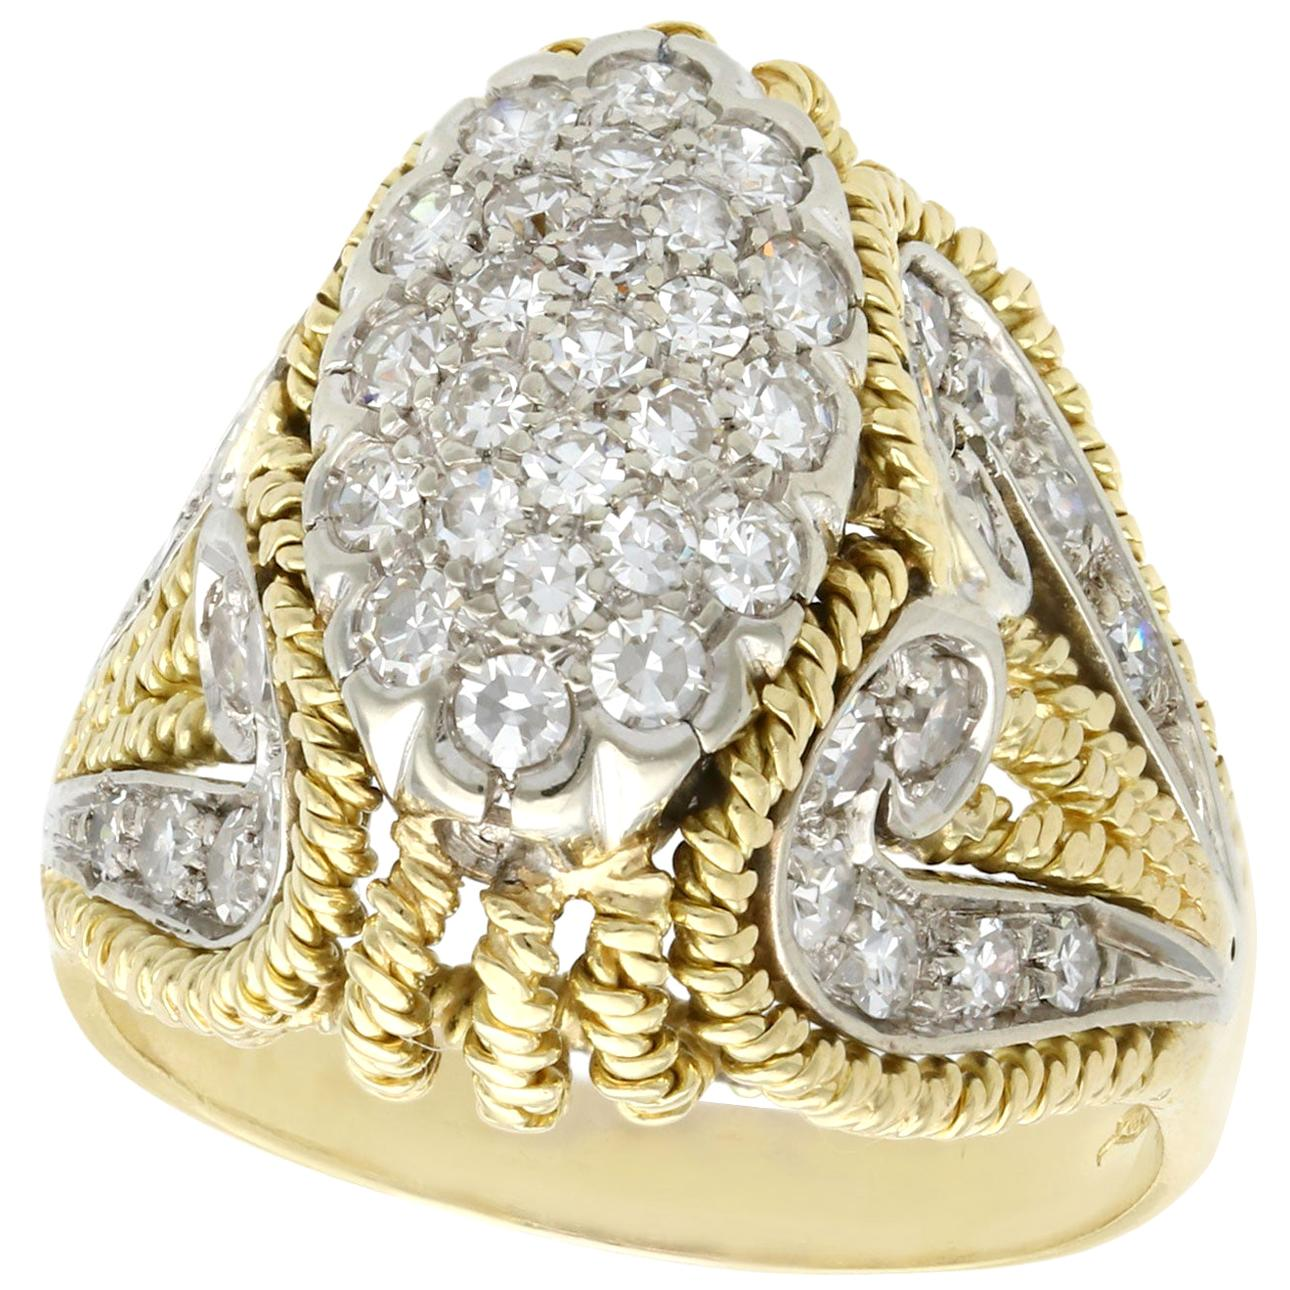 1950s Italian 1.12 Carat Diamond and Yellow Gold Cocktail Ring